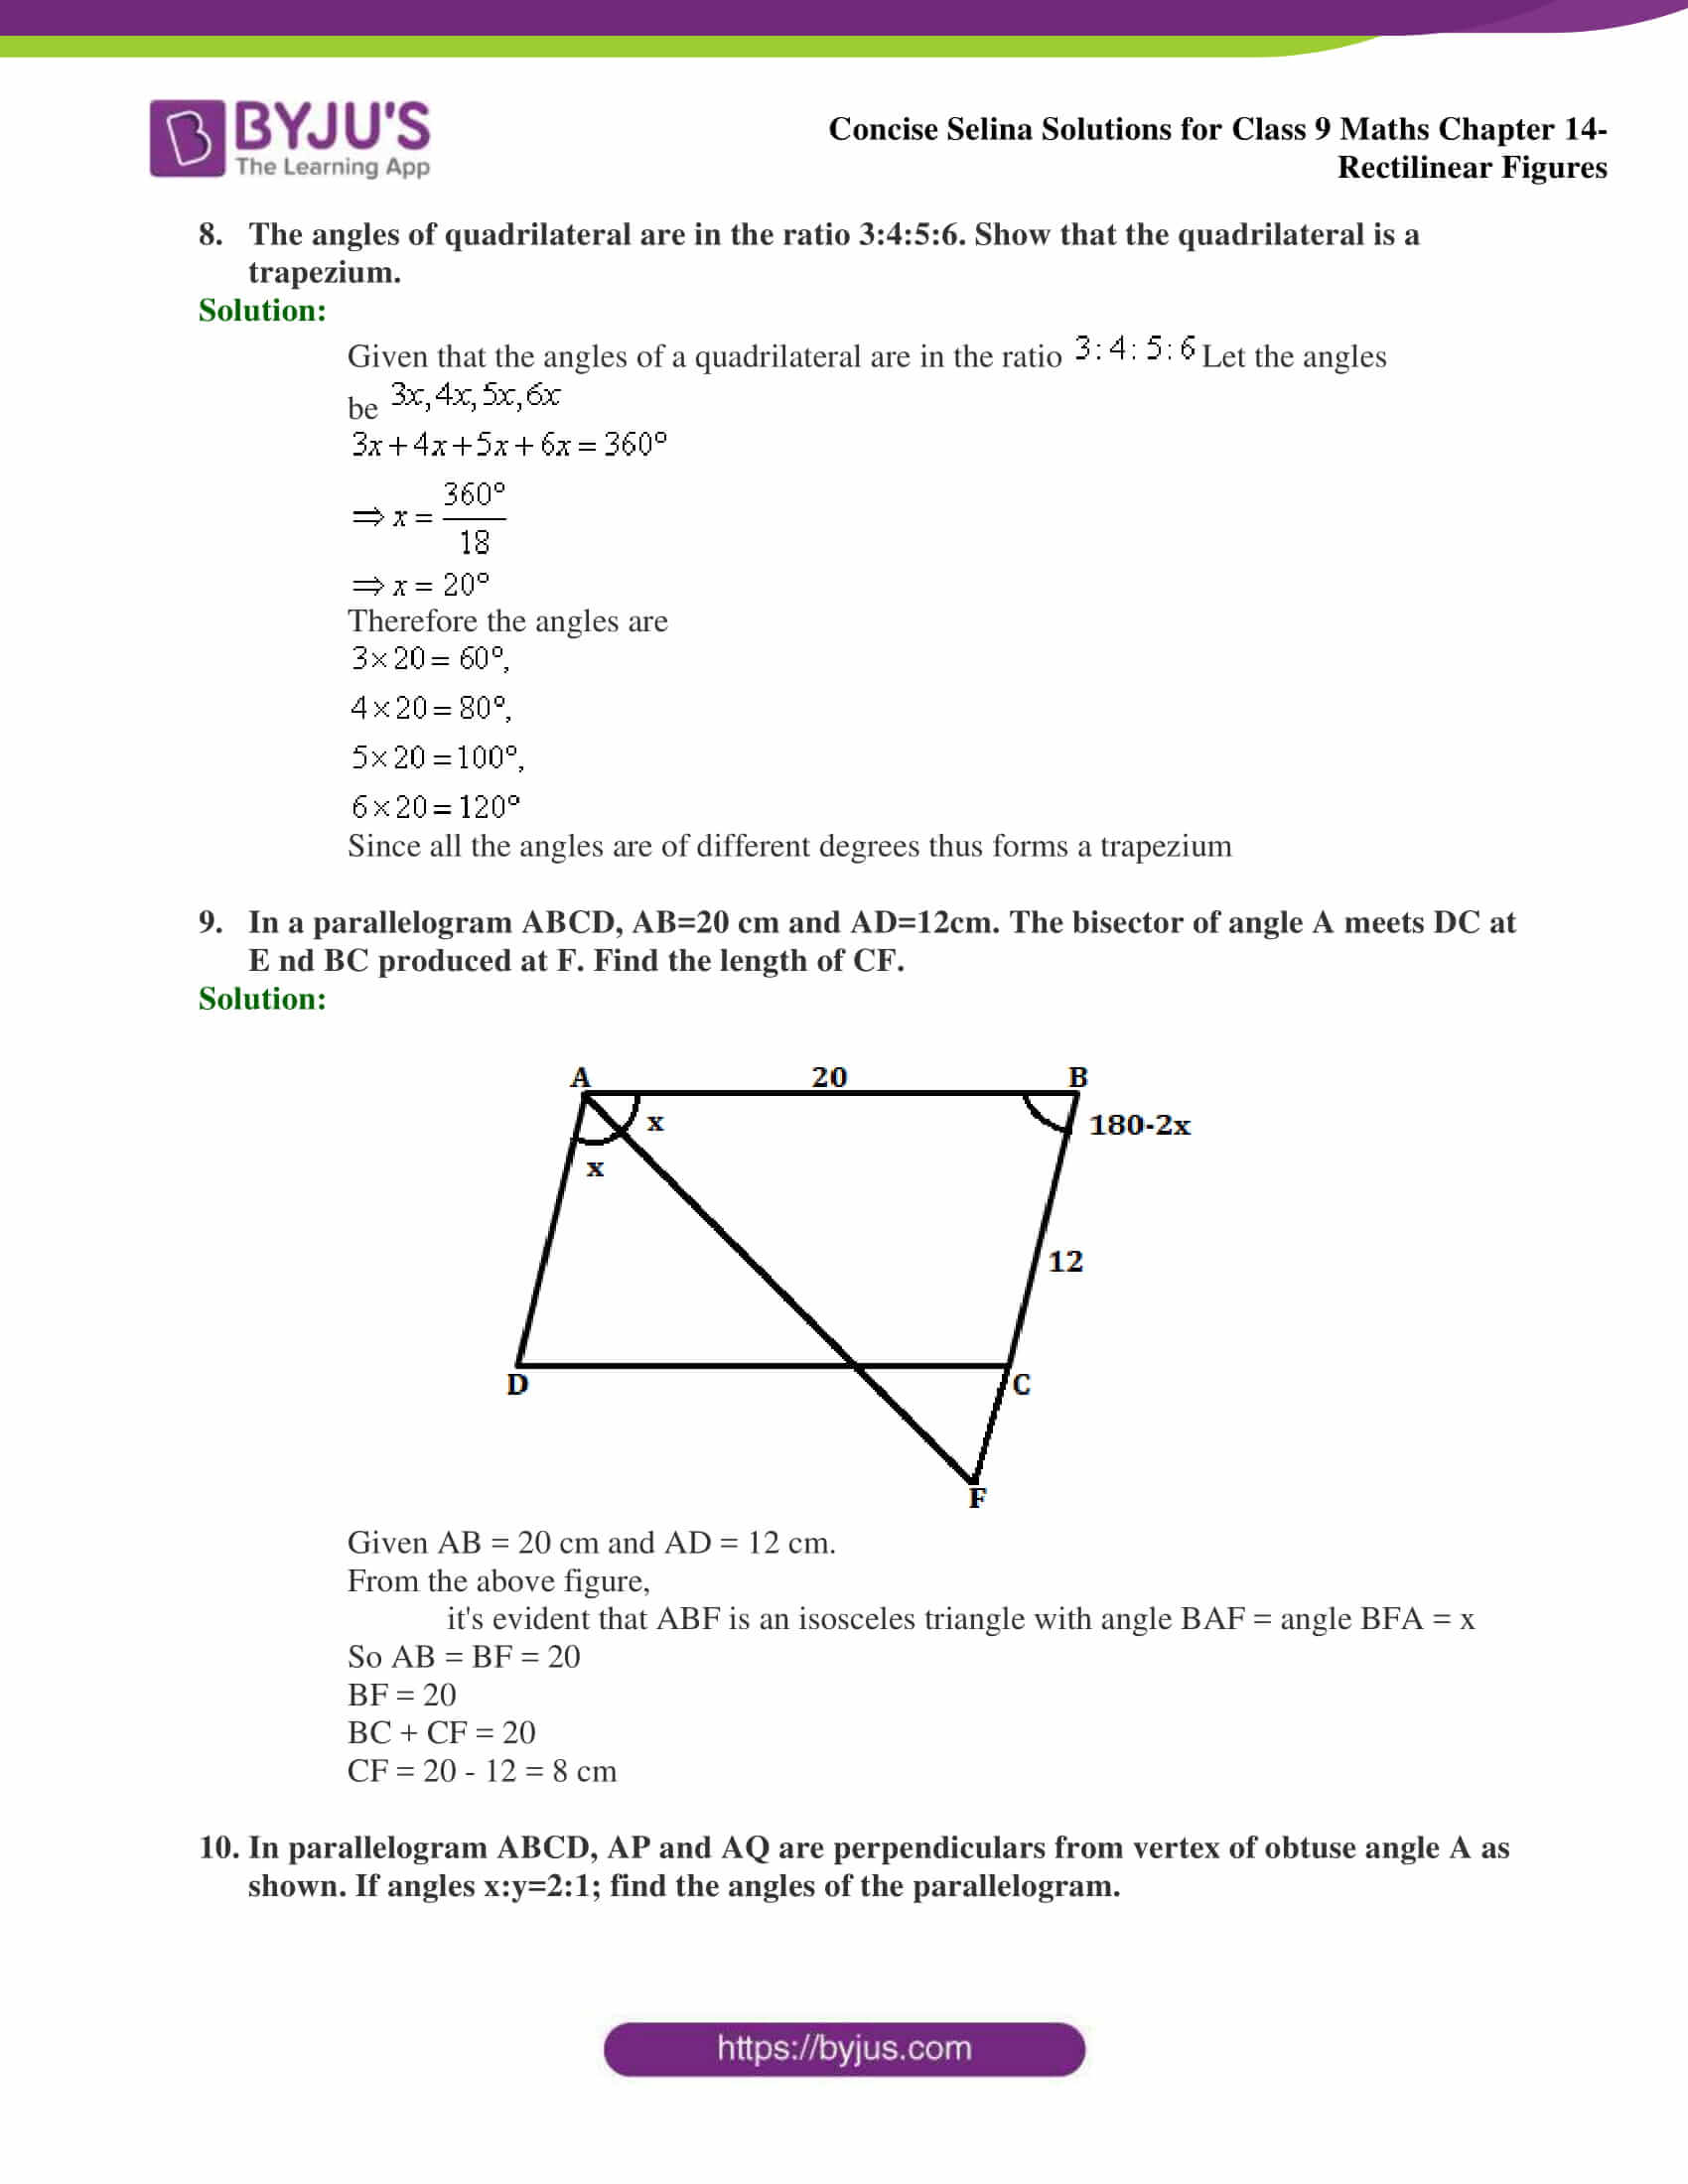 selina Solutions for Class 9 Maths Chapter 14 part 15